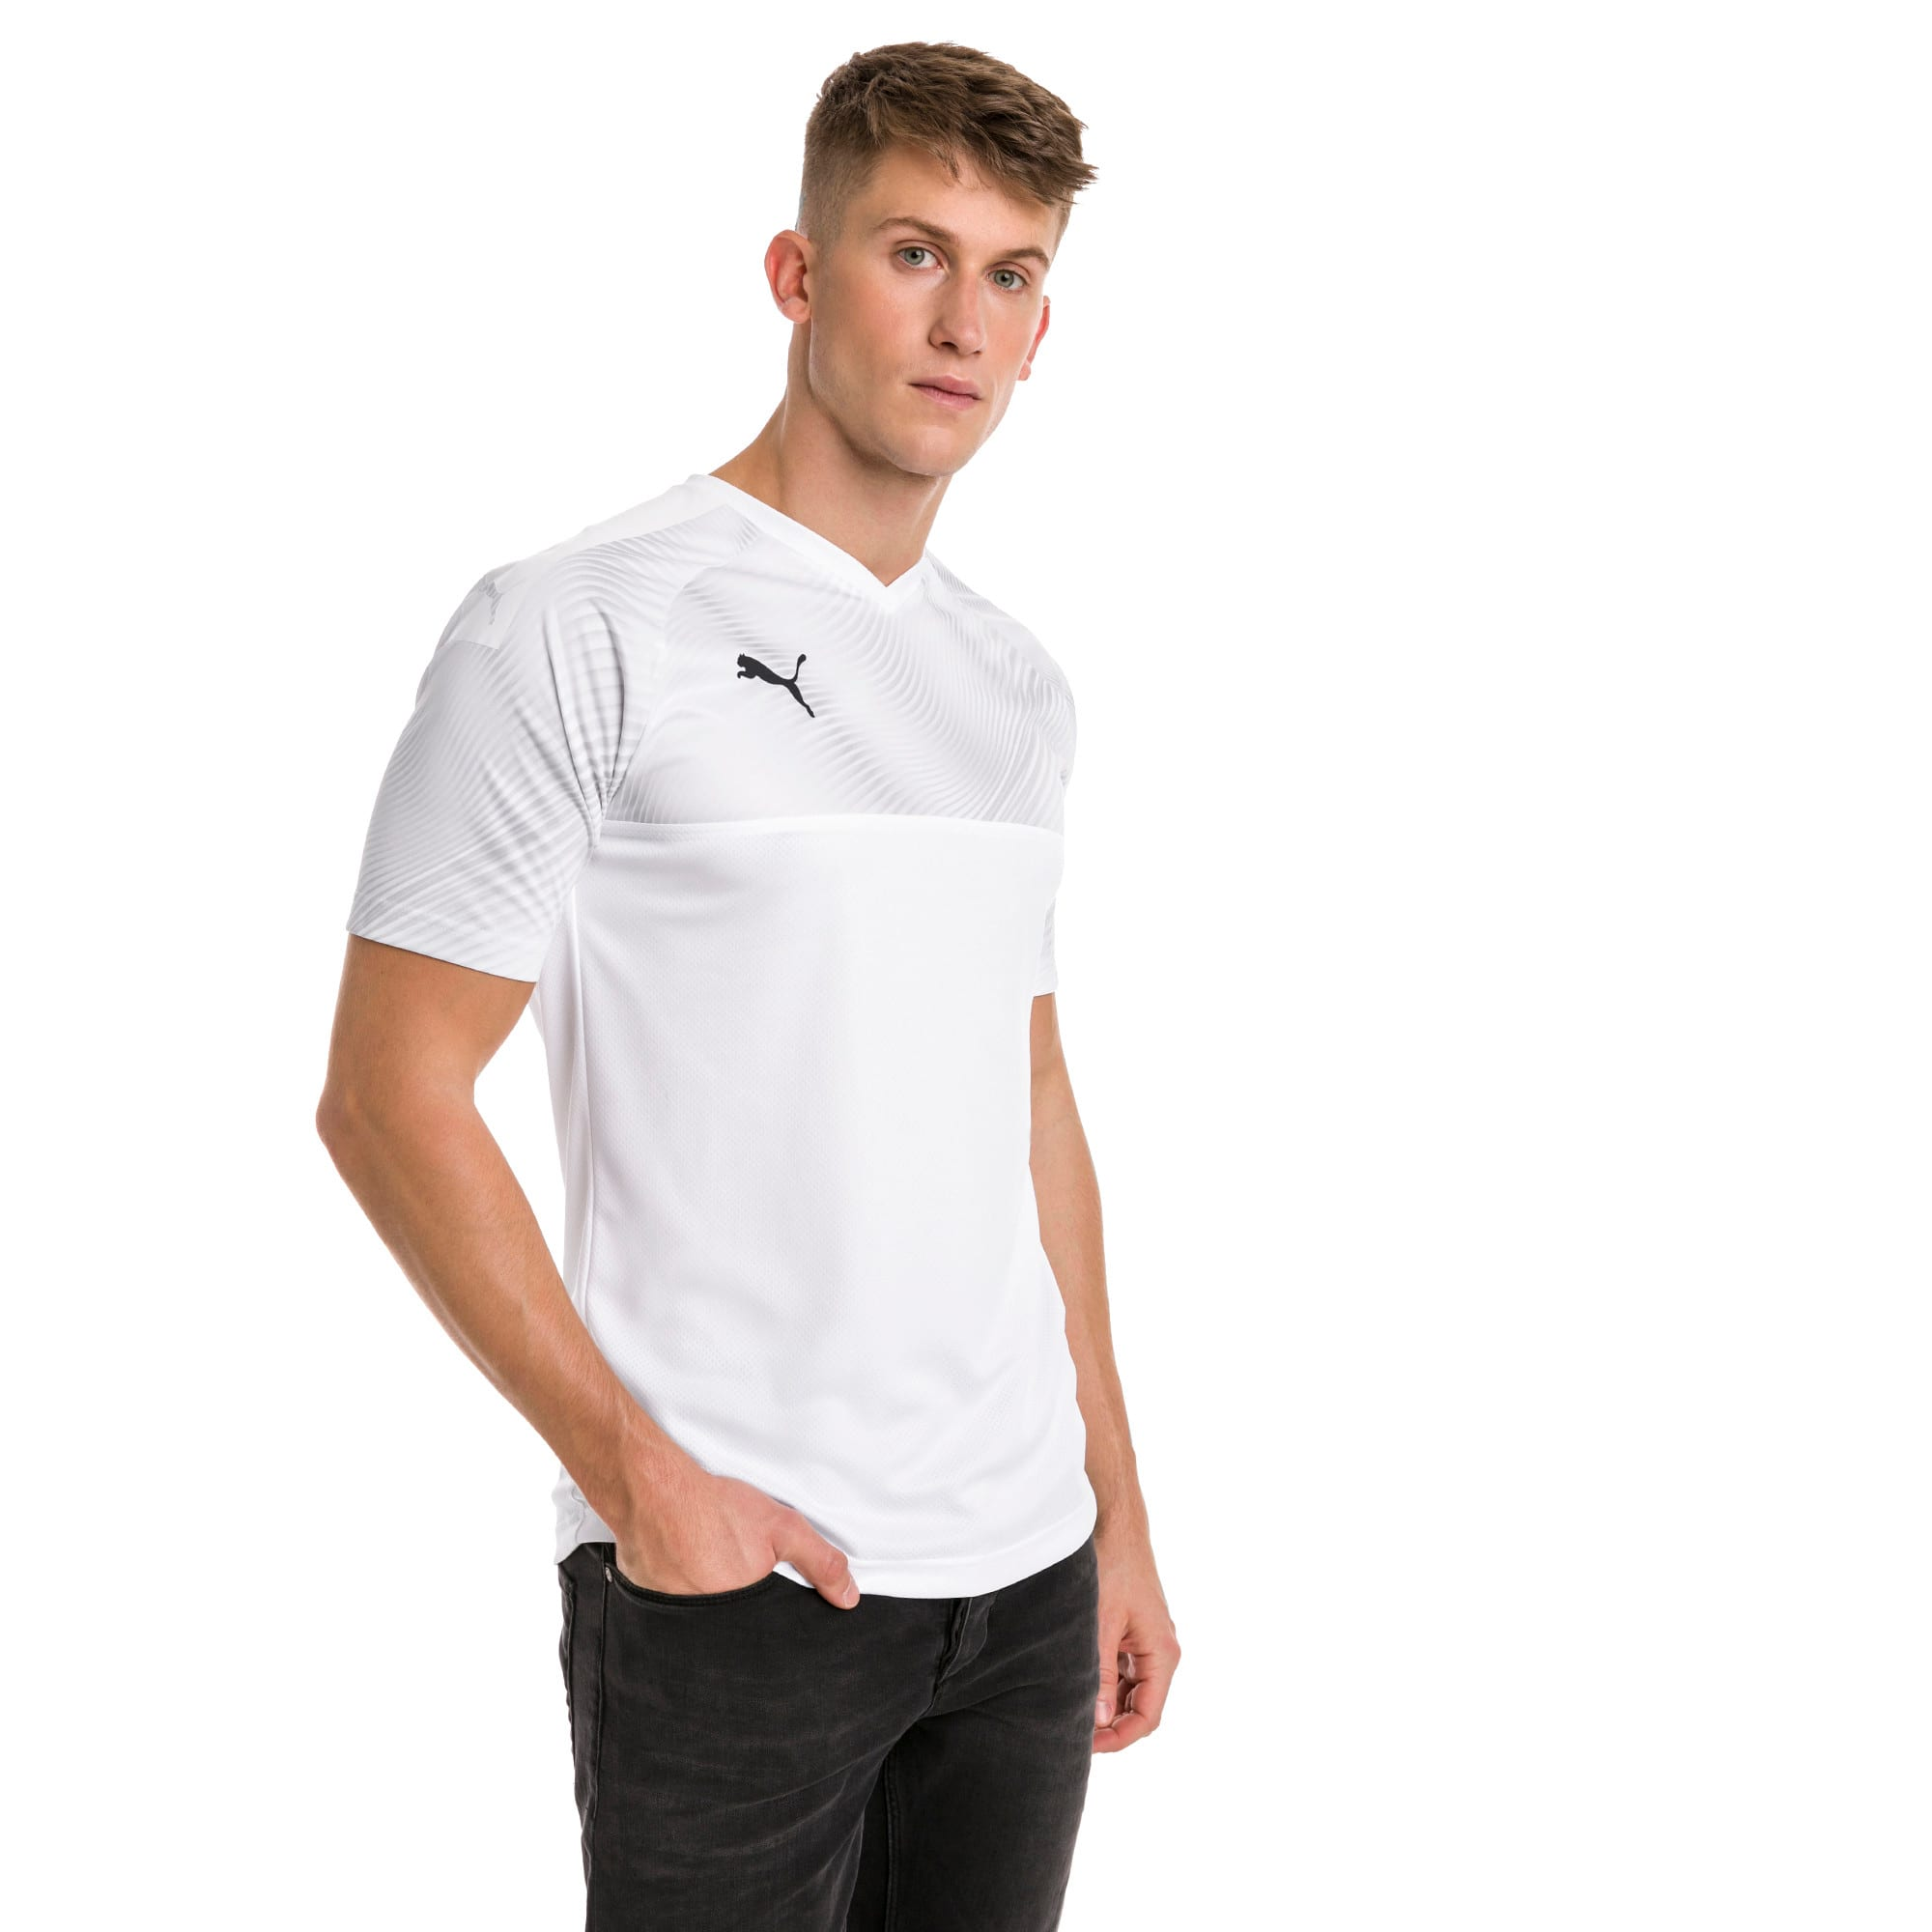 CUP Men's Football Jersey, Puma White-Puma Black, large